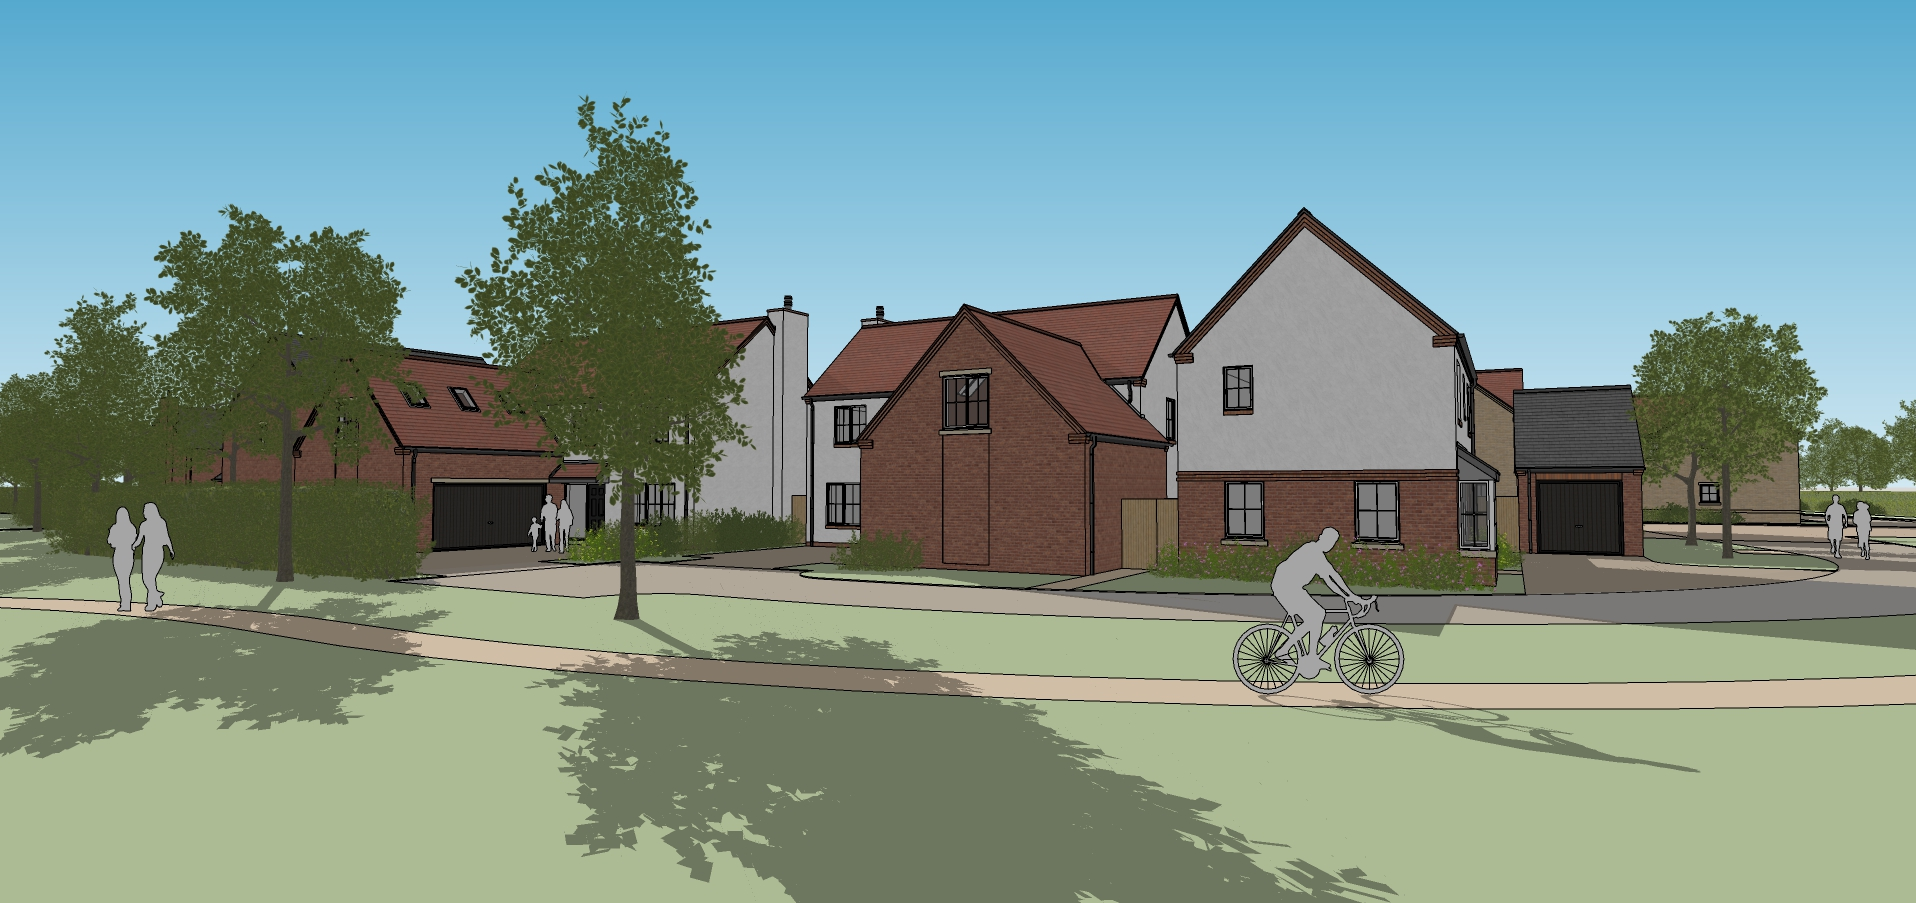 Taggart Homes Unveils Plans for UK Expansion